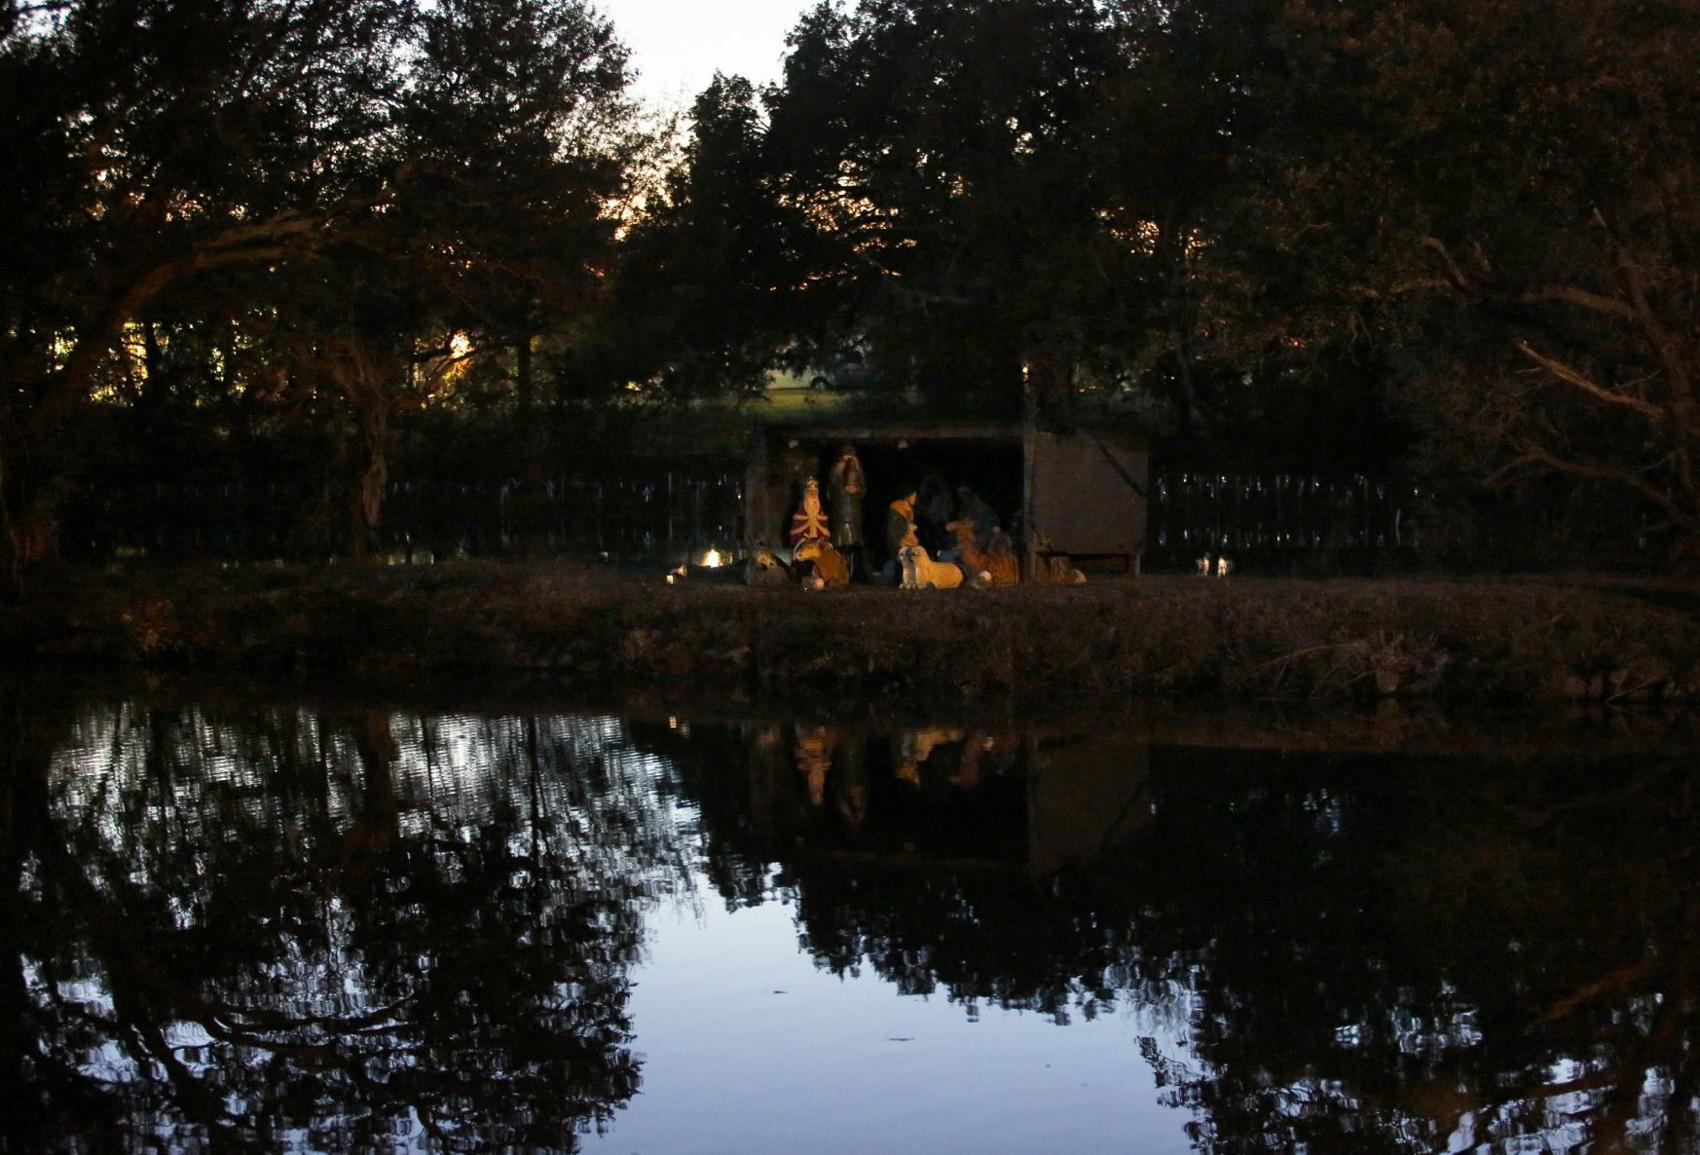 Every year, someone sets up a nativity scene in a Norfolk lake. Who's doing it, and why?